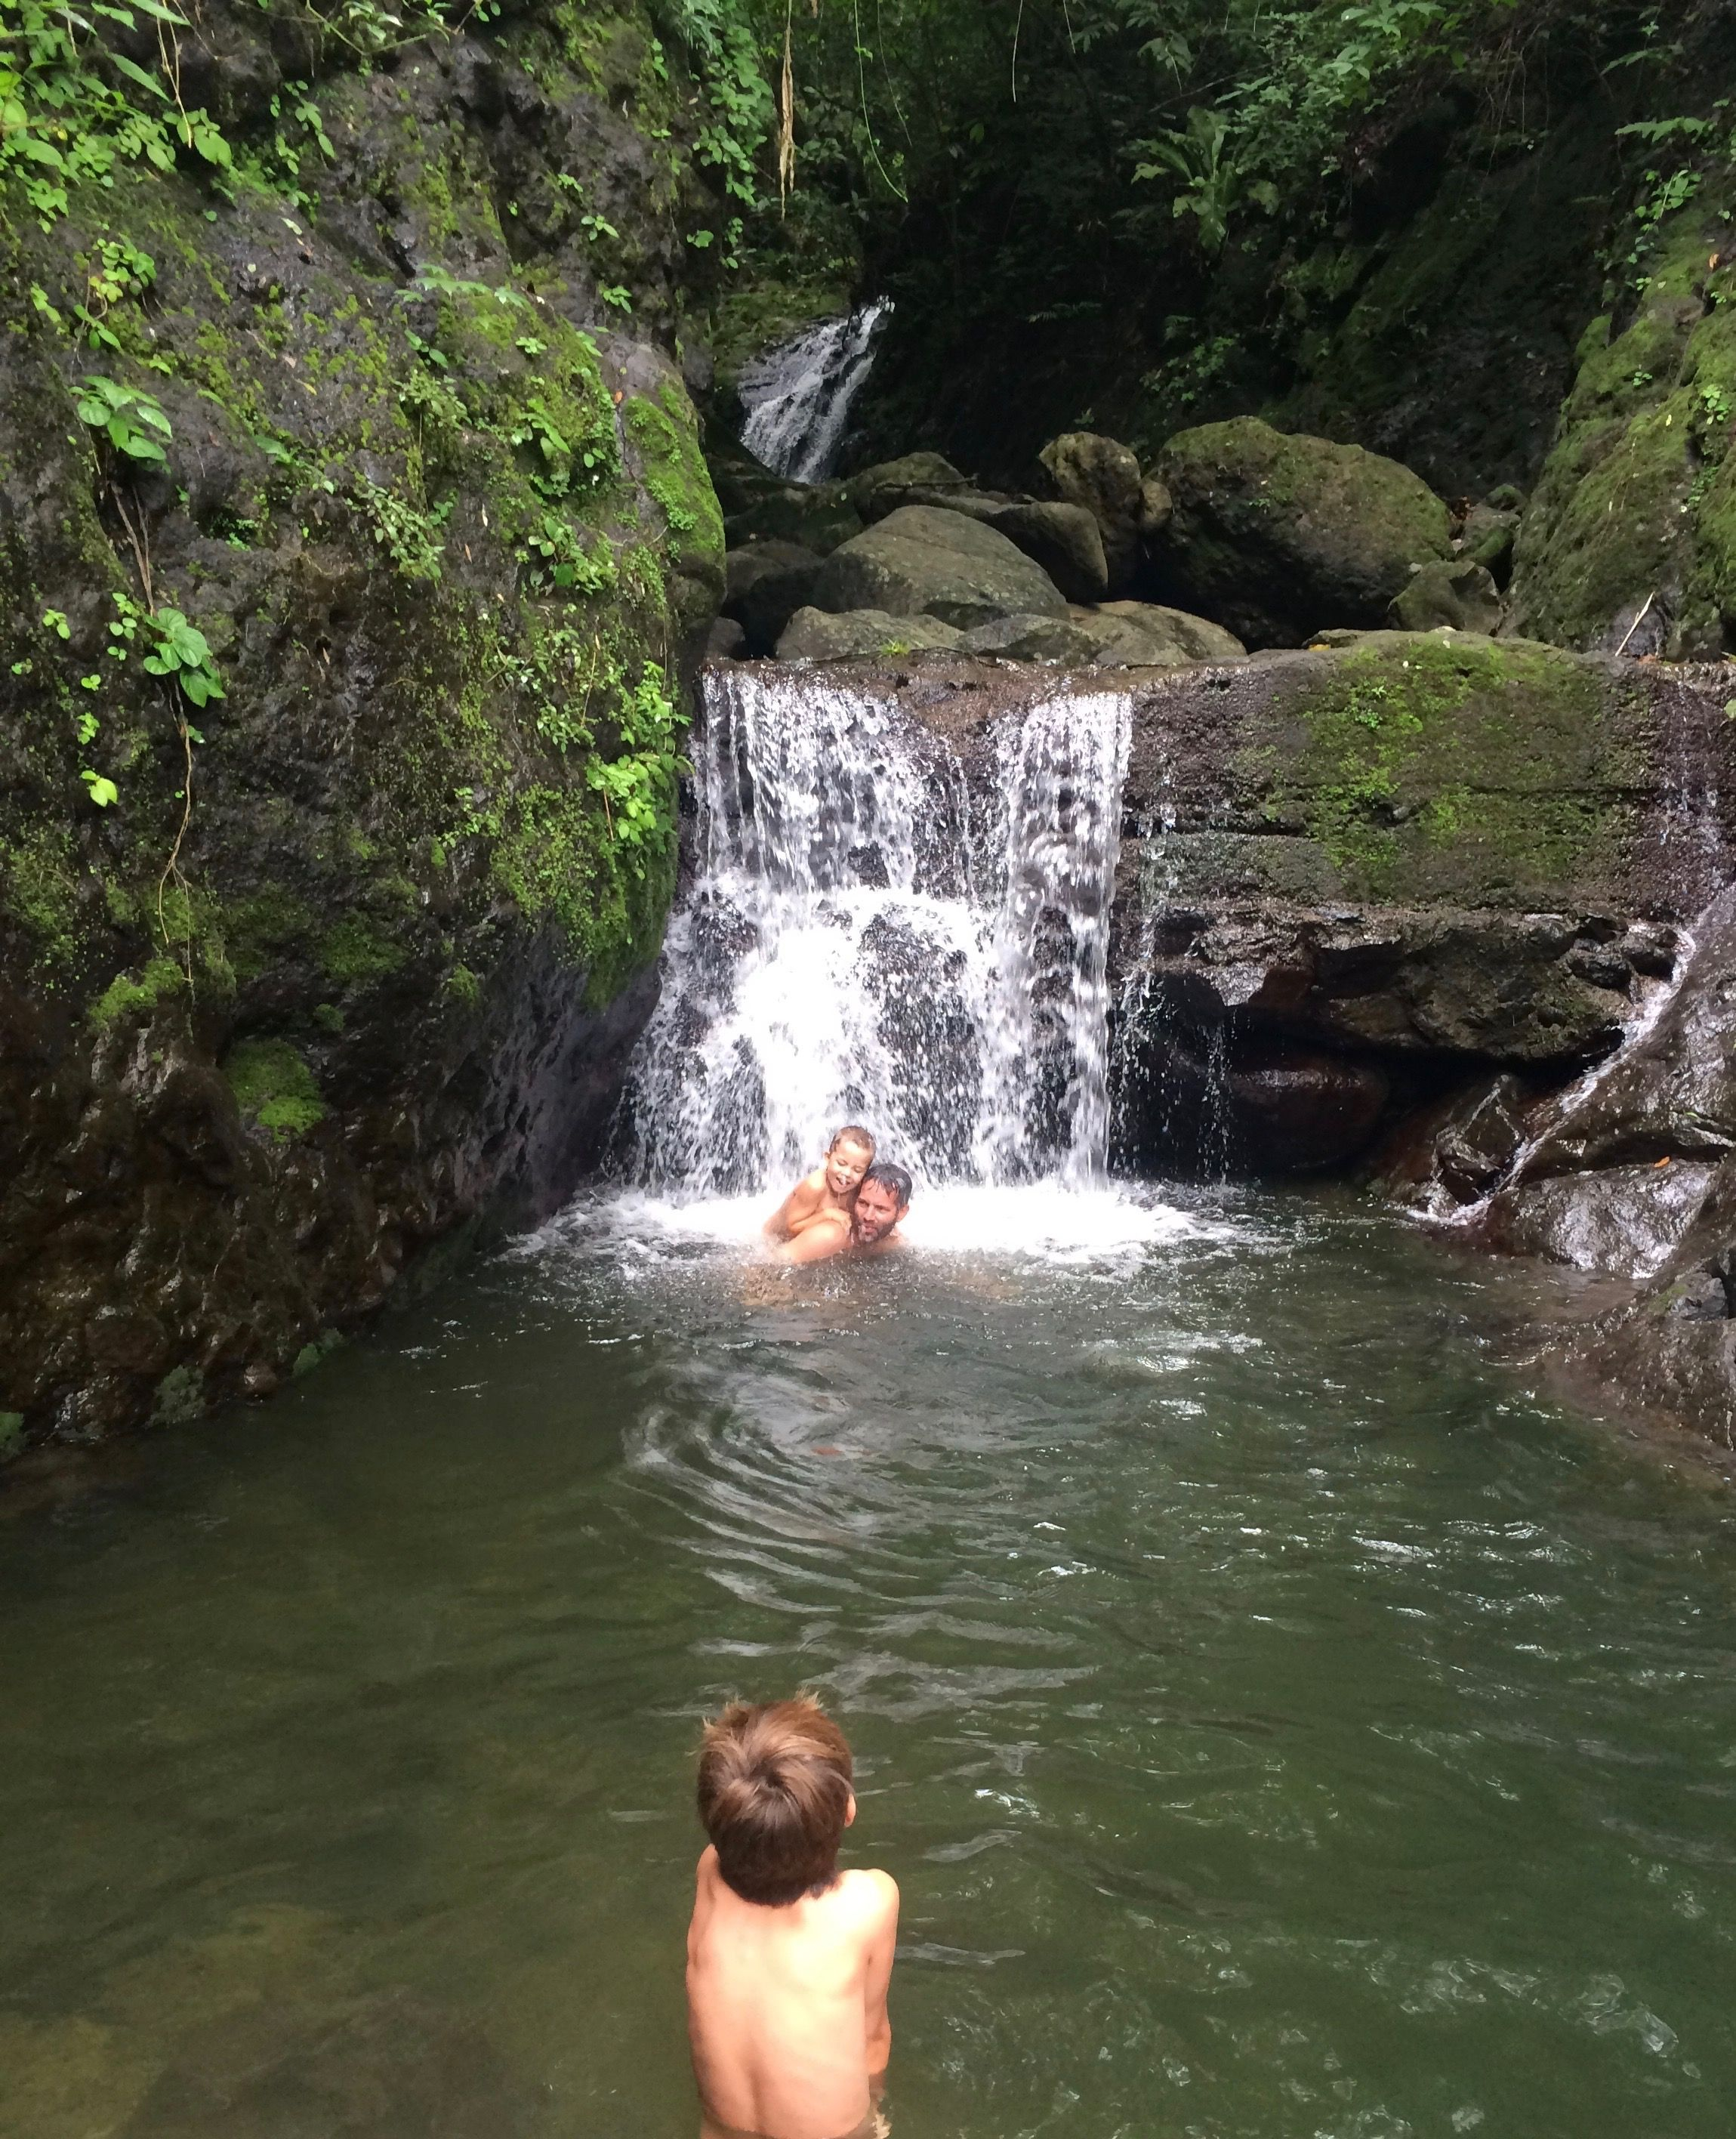 Daytons wild swimming in a natural pool on the hike to Cerro La India Dorminda.  El Valle de Antón, Panama.  July 13, 2015 | Photo by Kat Dayton, St. George News